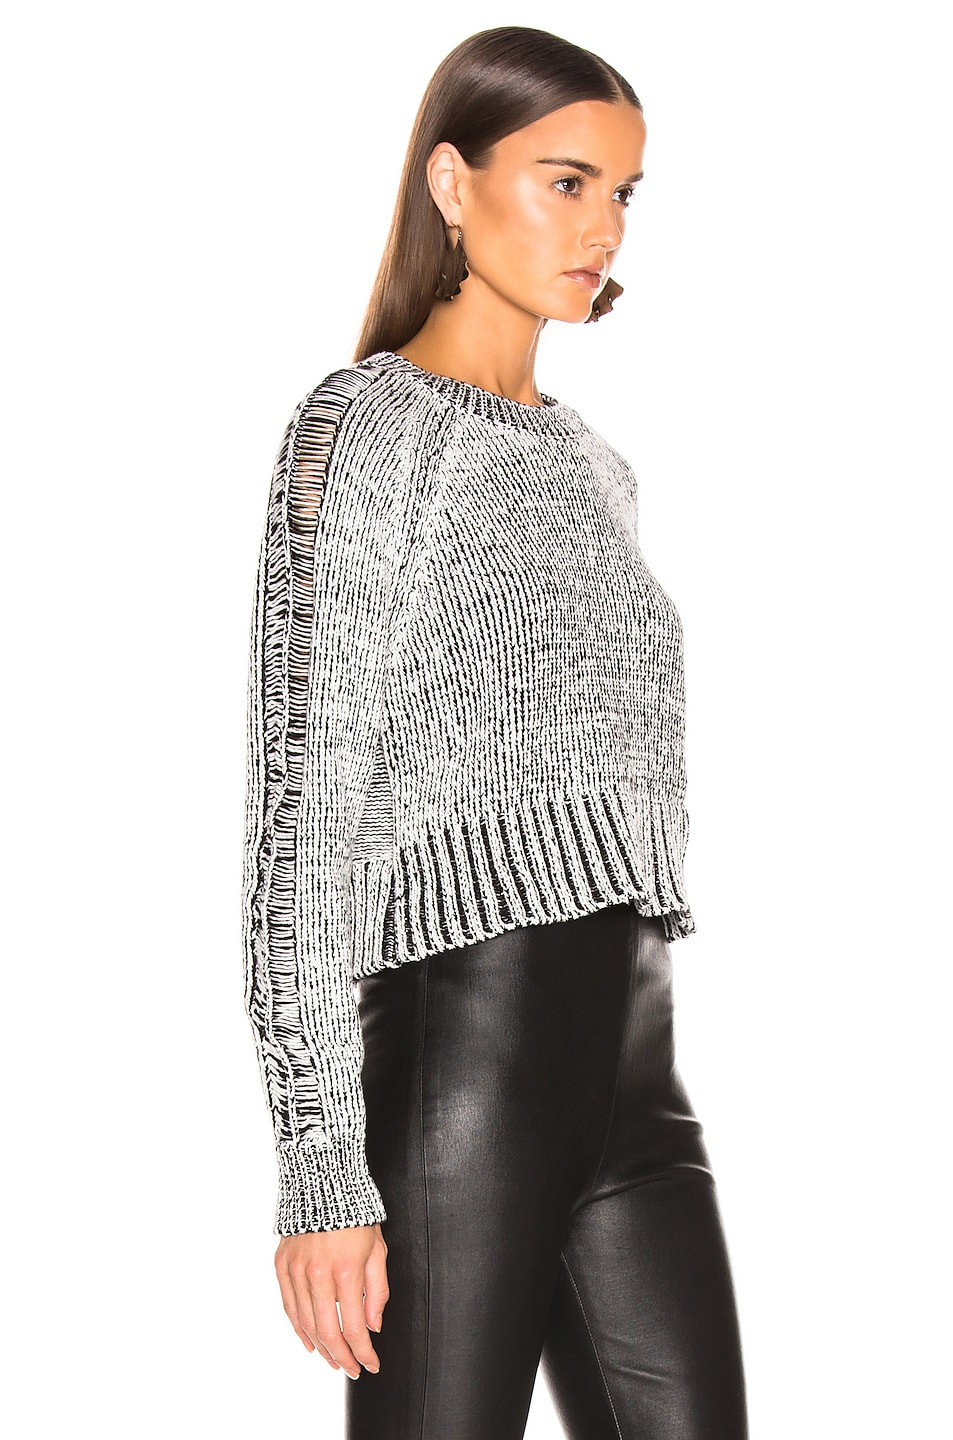 Image 2 of The Range Storm Knit in White & Black